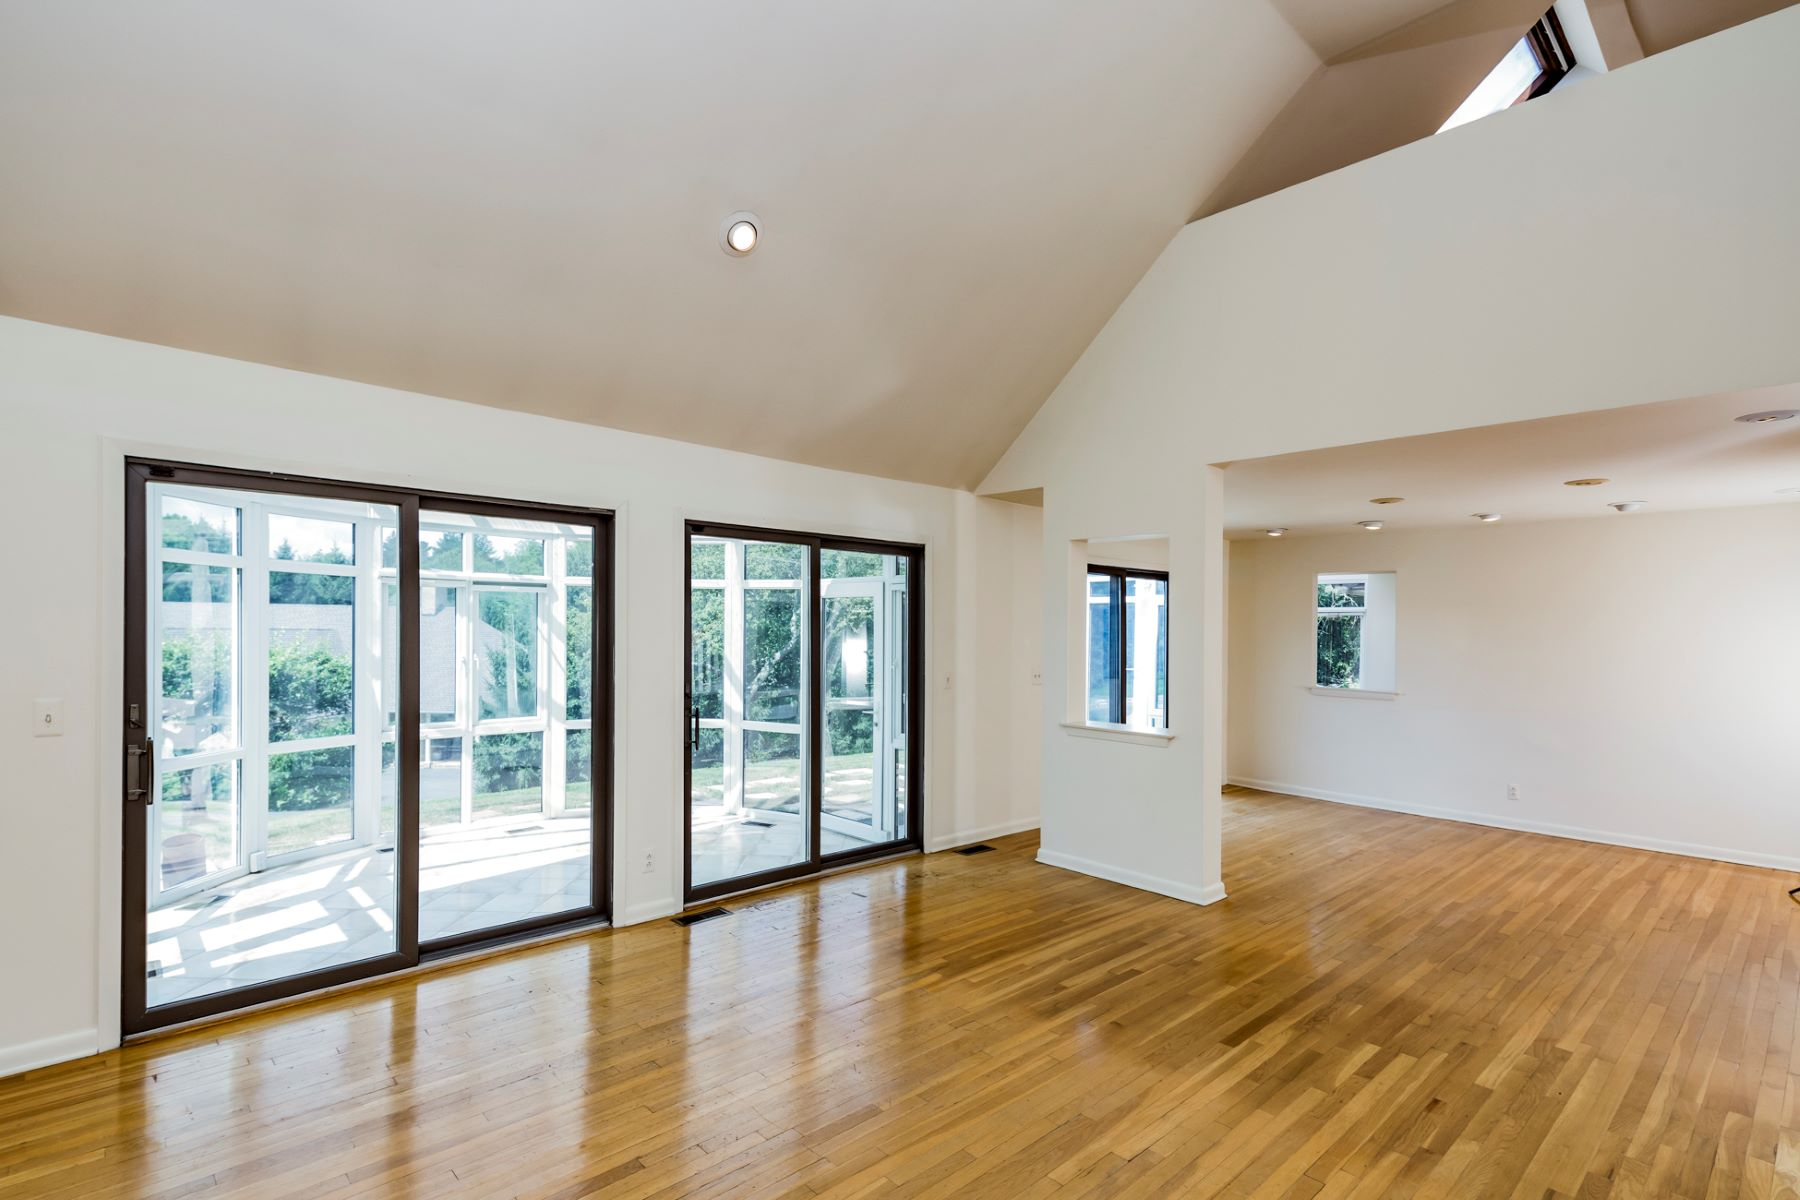 Additional photo for property listing at Modern, Light-Filled Hillier Home Frames Nature 7 Kimberly Court, Princeton, New Jersey 08540 United States